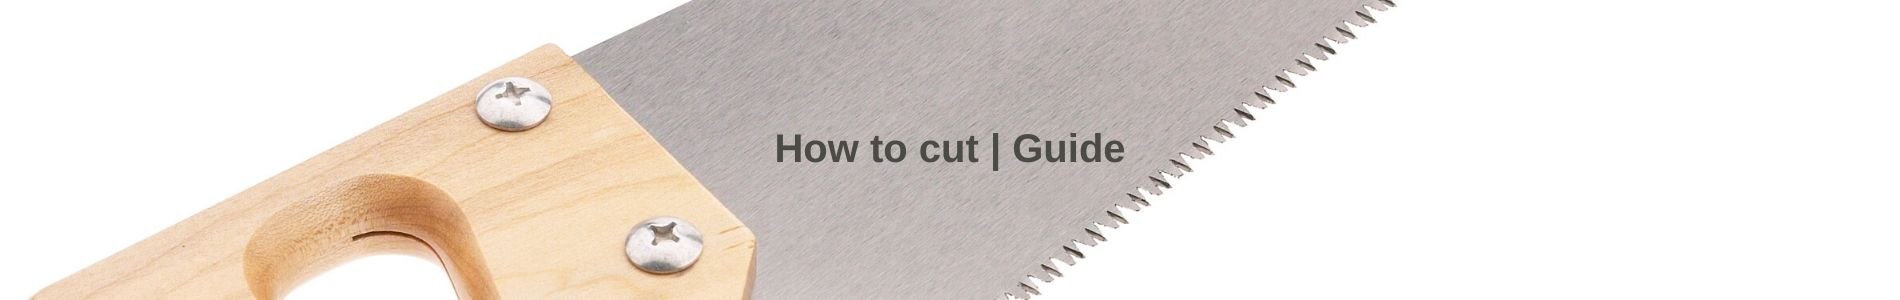 how to cut wall cladding